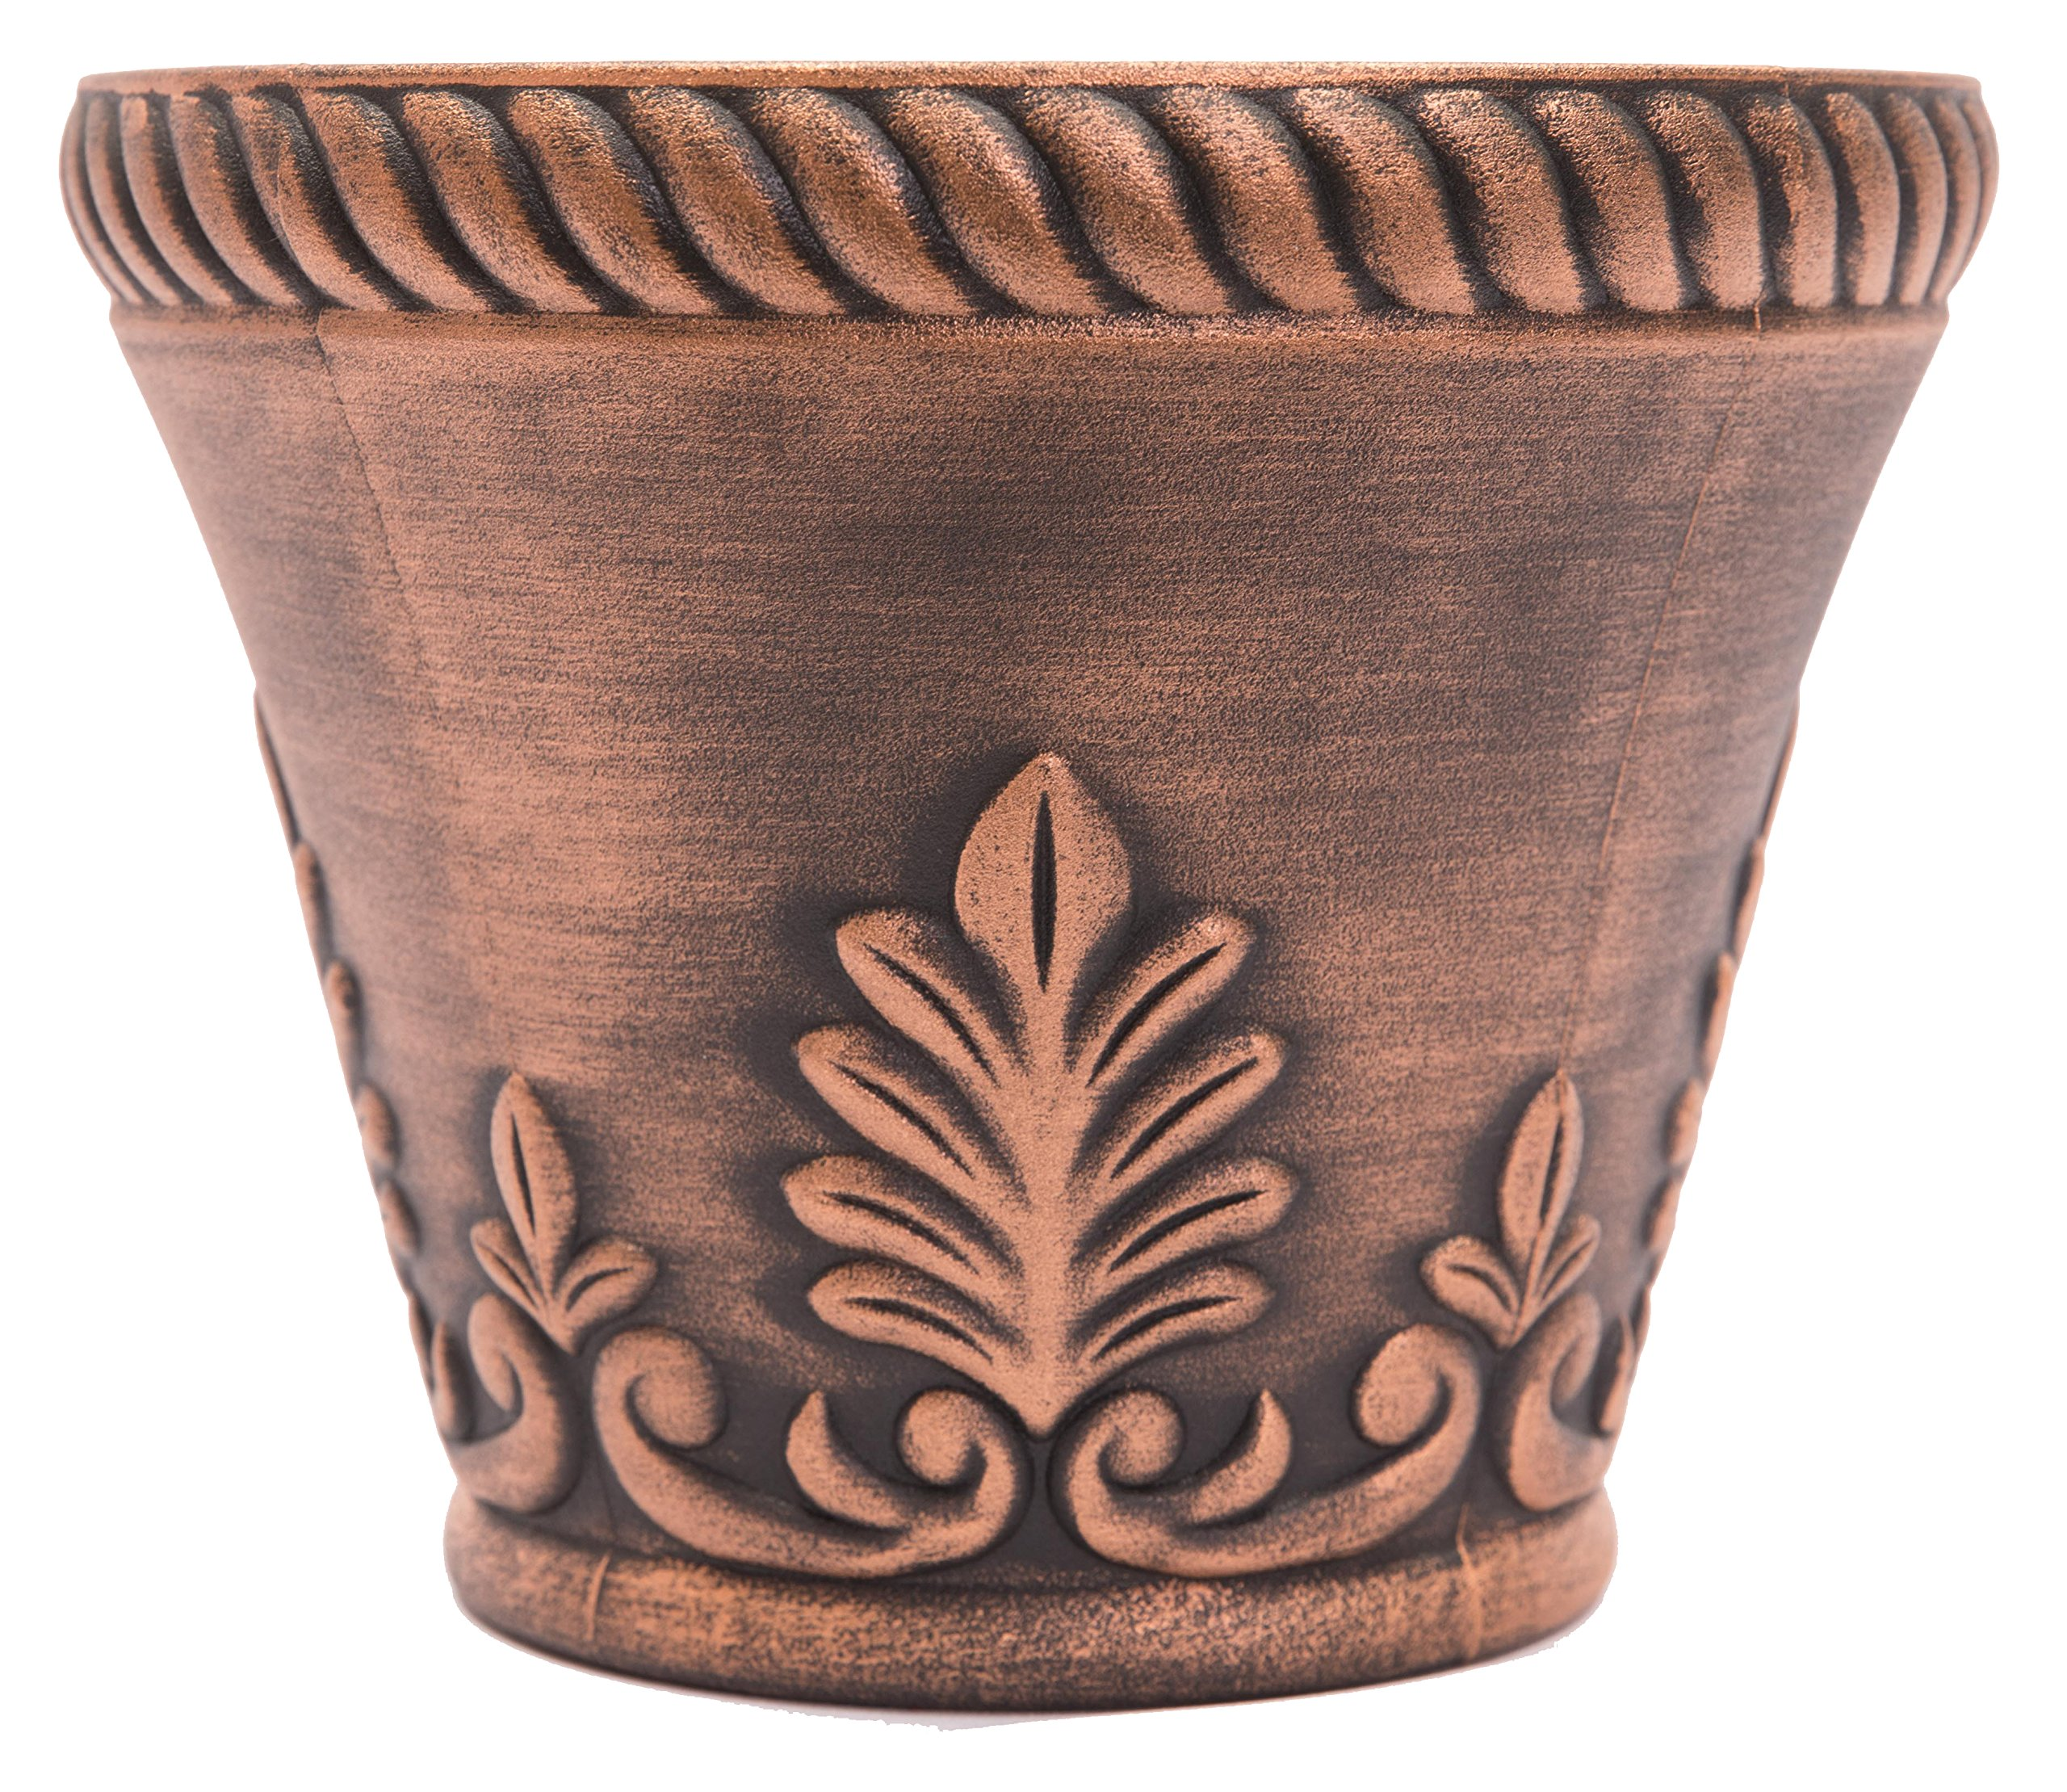 Rustic Venetian Look Plastic Planter 10X8 Flowerpot for Indoor, Outdoor, Garden, Patio, Office Ornaments, Home Decor, Long Lasting Reusable, Light Weight, Water Resistant (Copper)